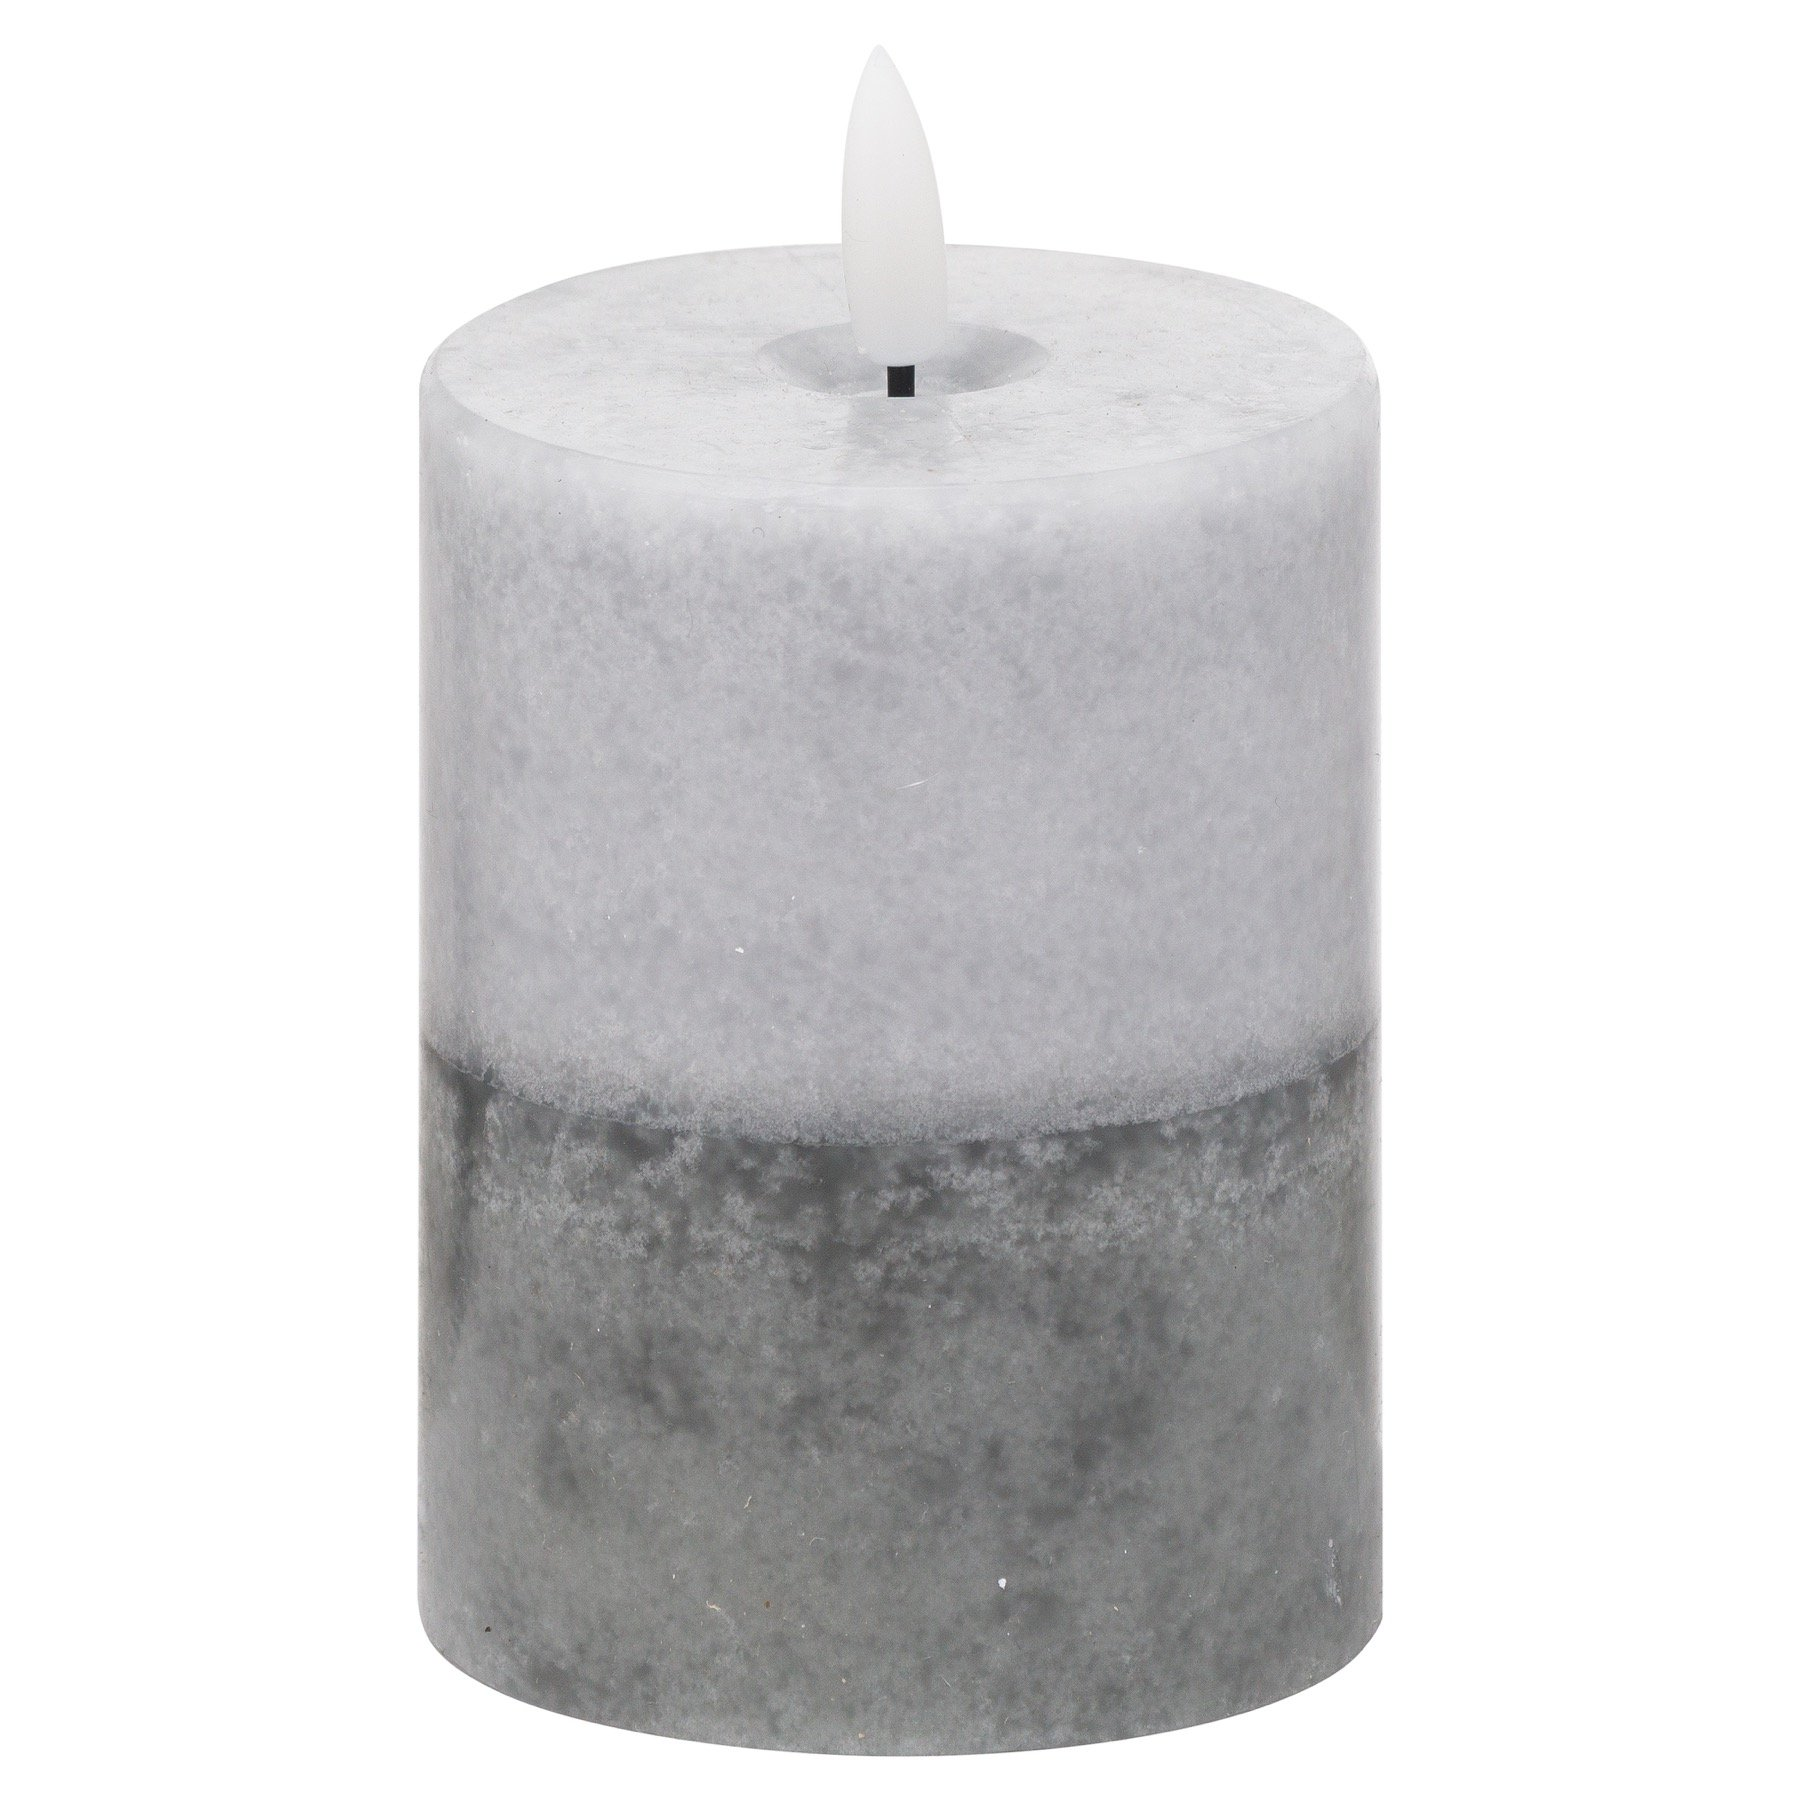 Luxe Collection Natural Glow 3x4 Grey  Dipped LED Candle - Image 1